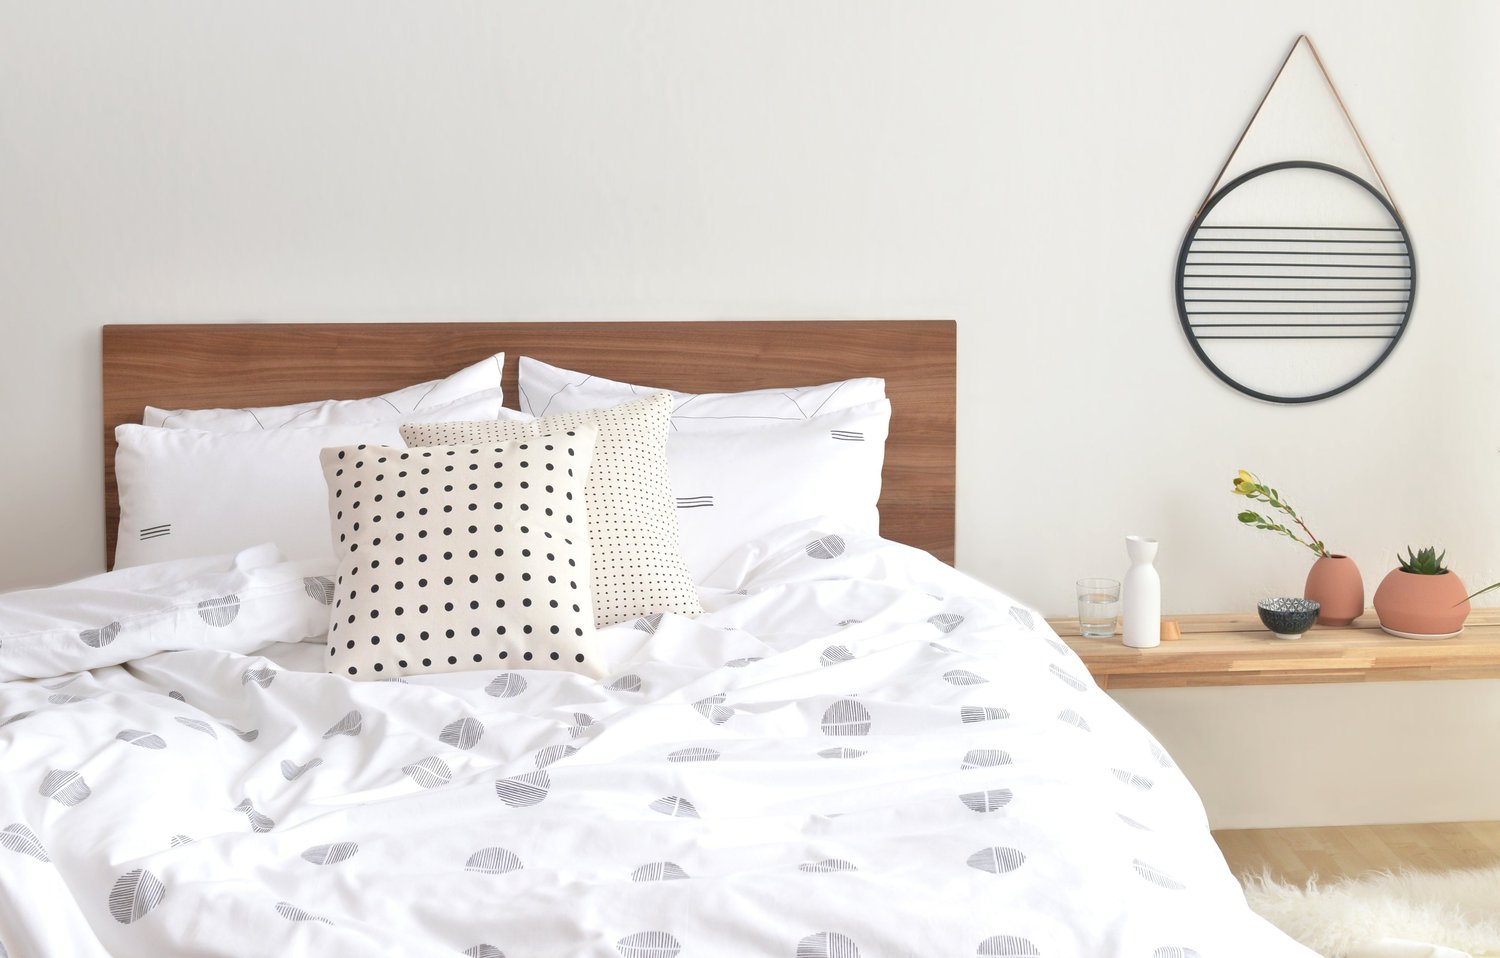 Sustainable and organic linen and bedding.